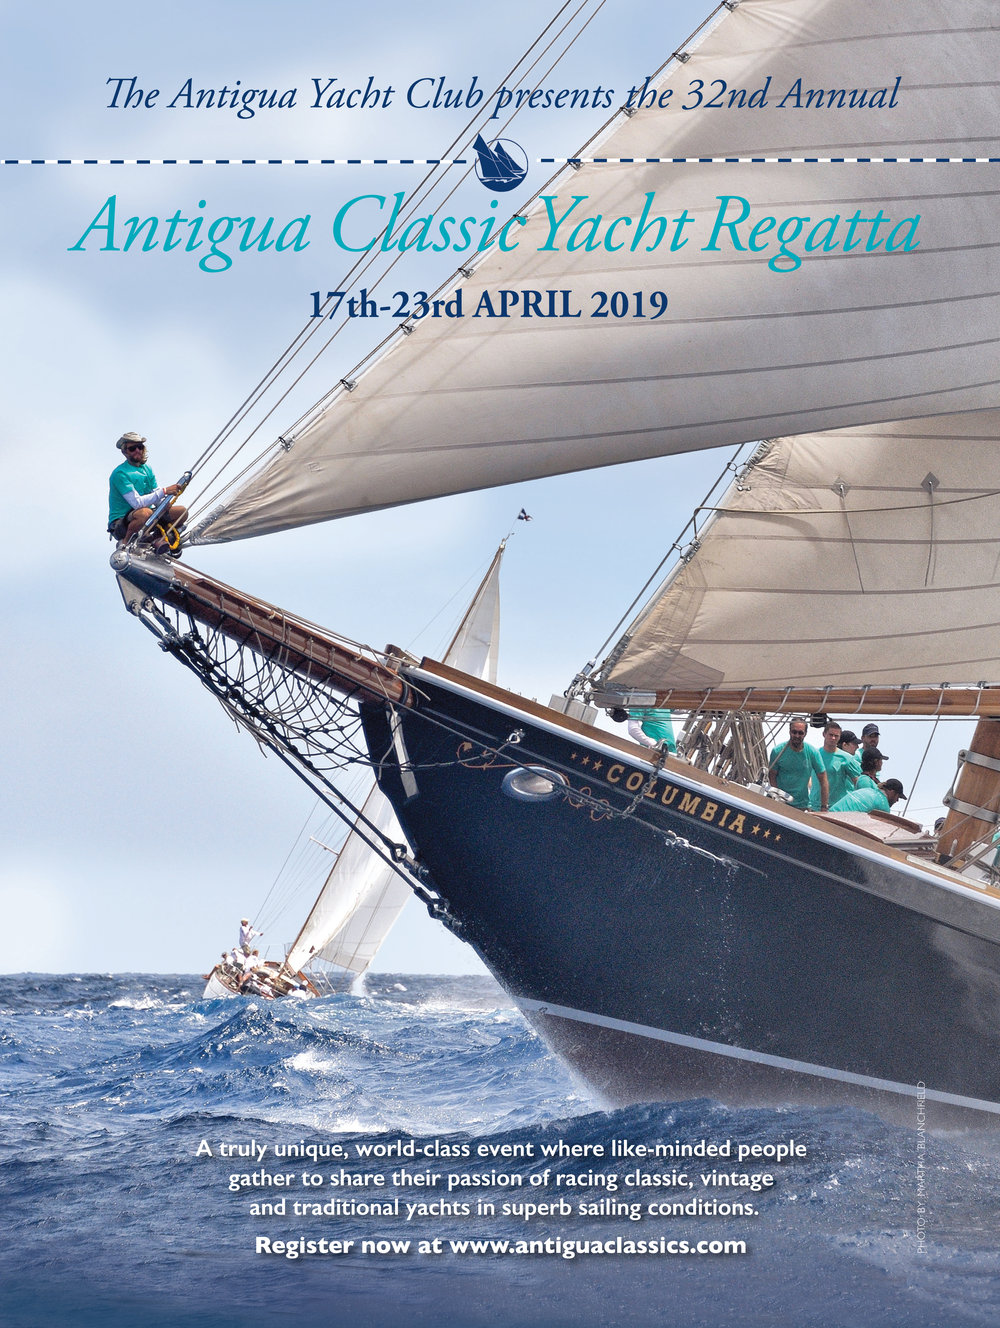 Wooden Boat  magazine is running this advert, and the image landed on the cover of the 2019 programme.